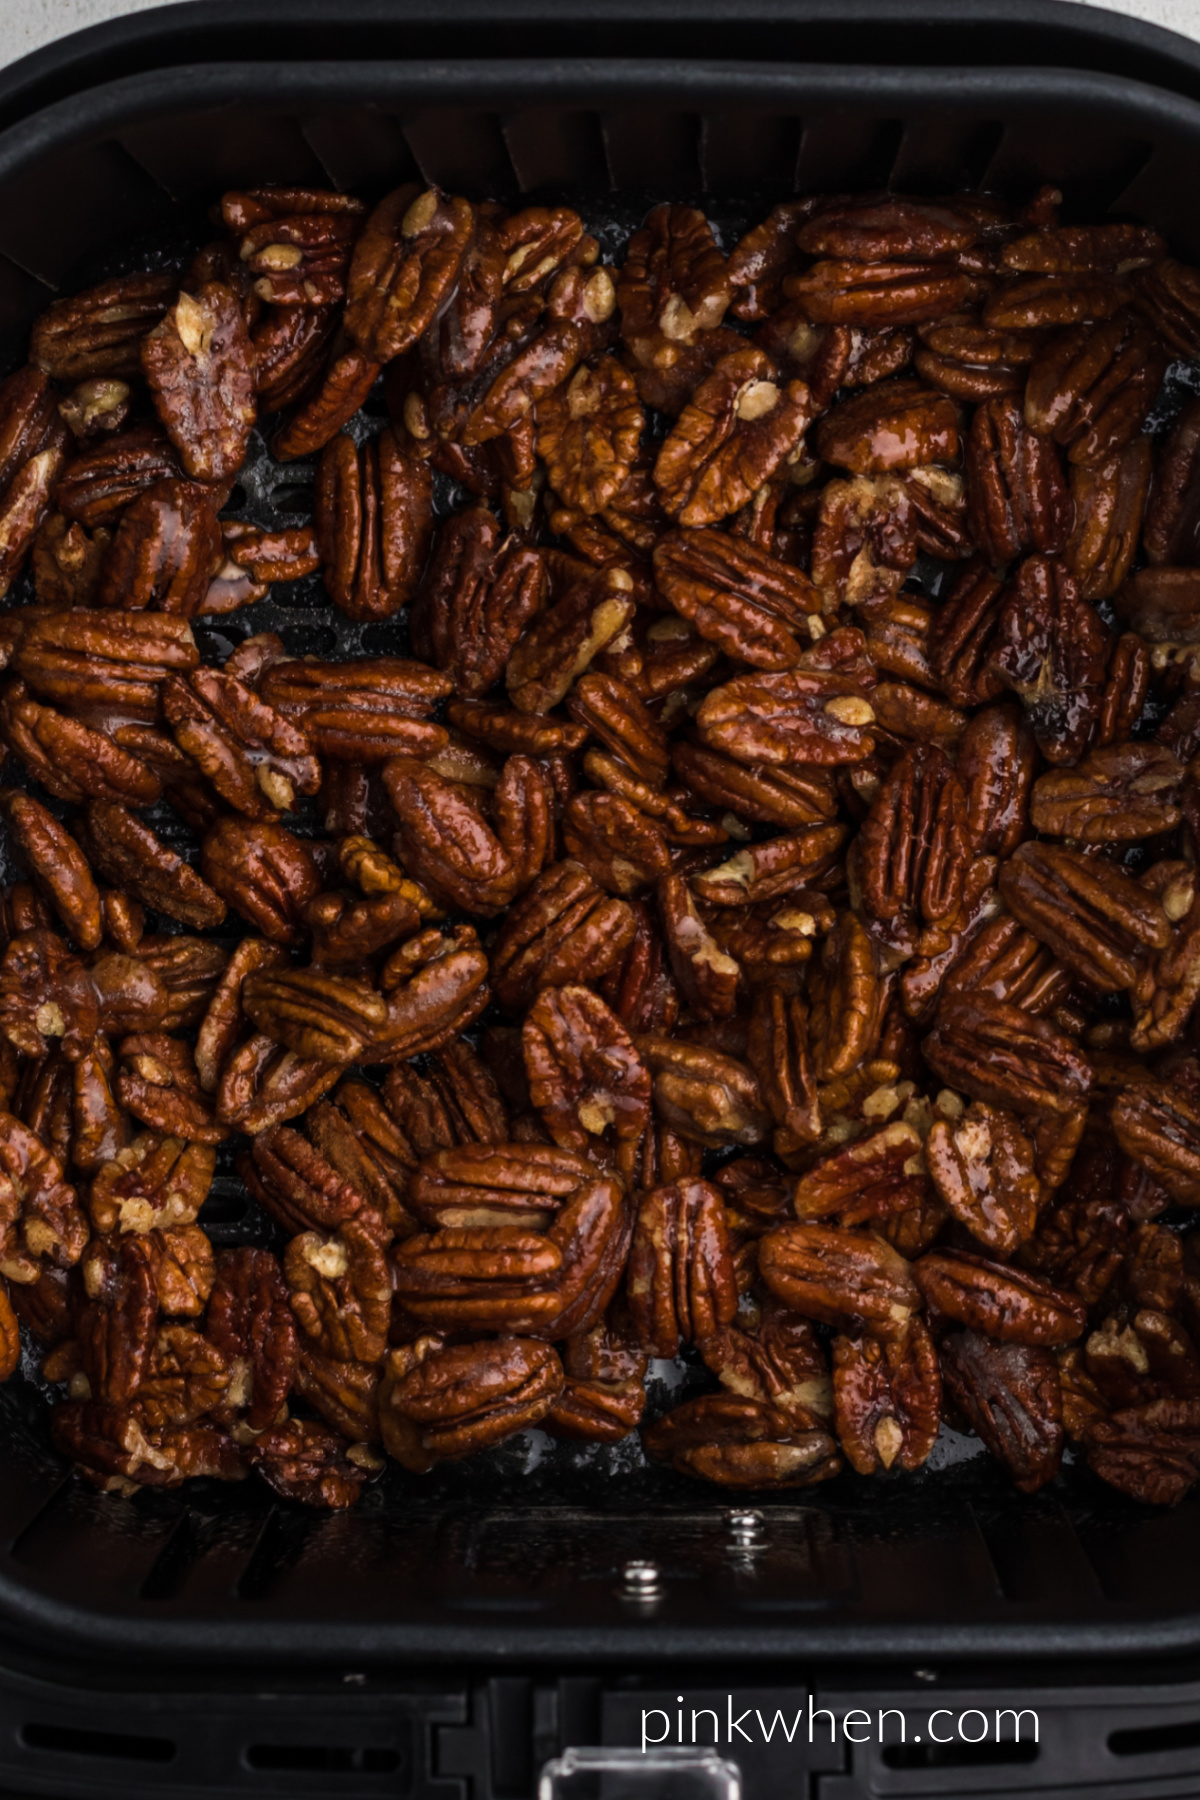 Candied pecans in the air fryer ready to cook.